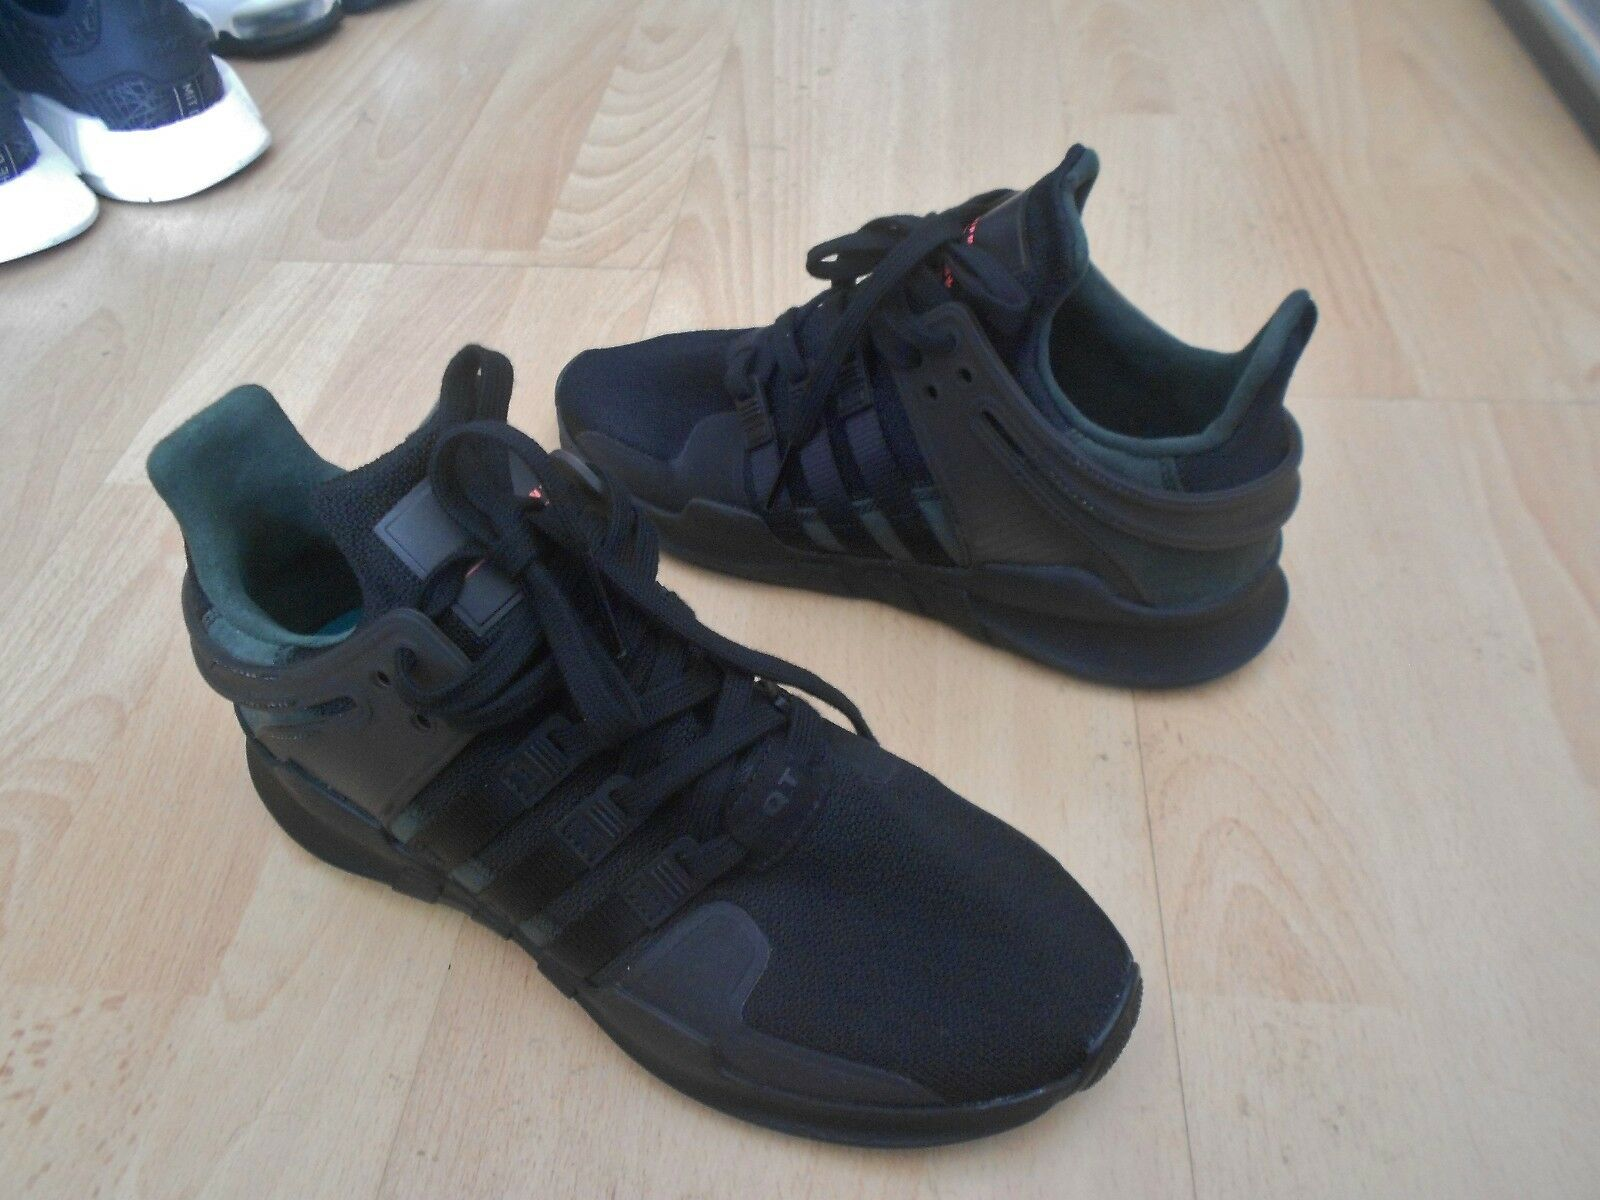 ADIDAS EQT ADV 91-16 TRAINERS UK SIZE 7 -  IN VERY GOOD CONDITION - HARDLY USED